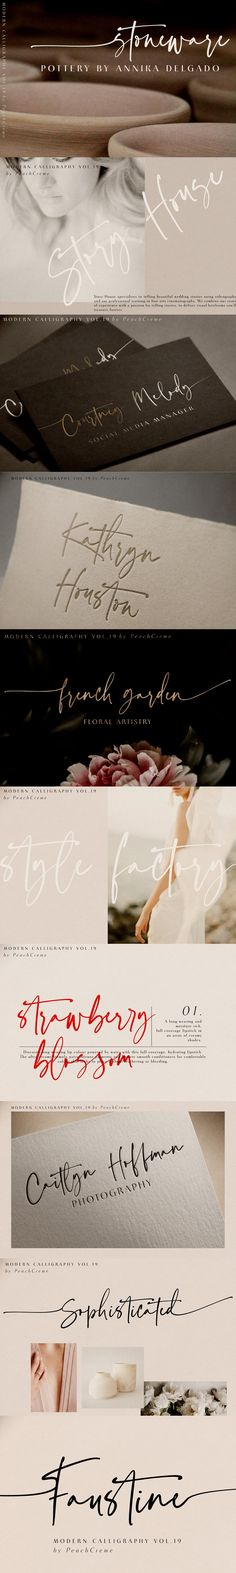 Faustine //Modern Script Uppercase And Lowercase Letters, Illustrator Cs, Modern Fonts, Script Fonts, Glyphs, Lower Case Letters, Hand Lettering, Im Not Perfect, Typography